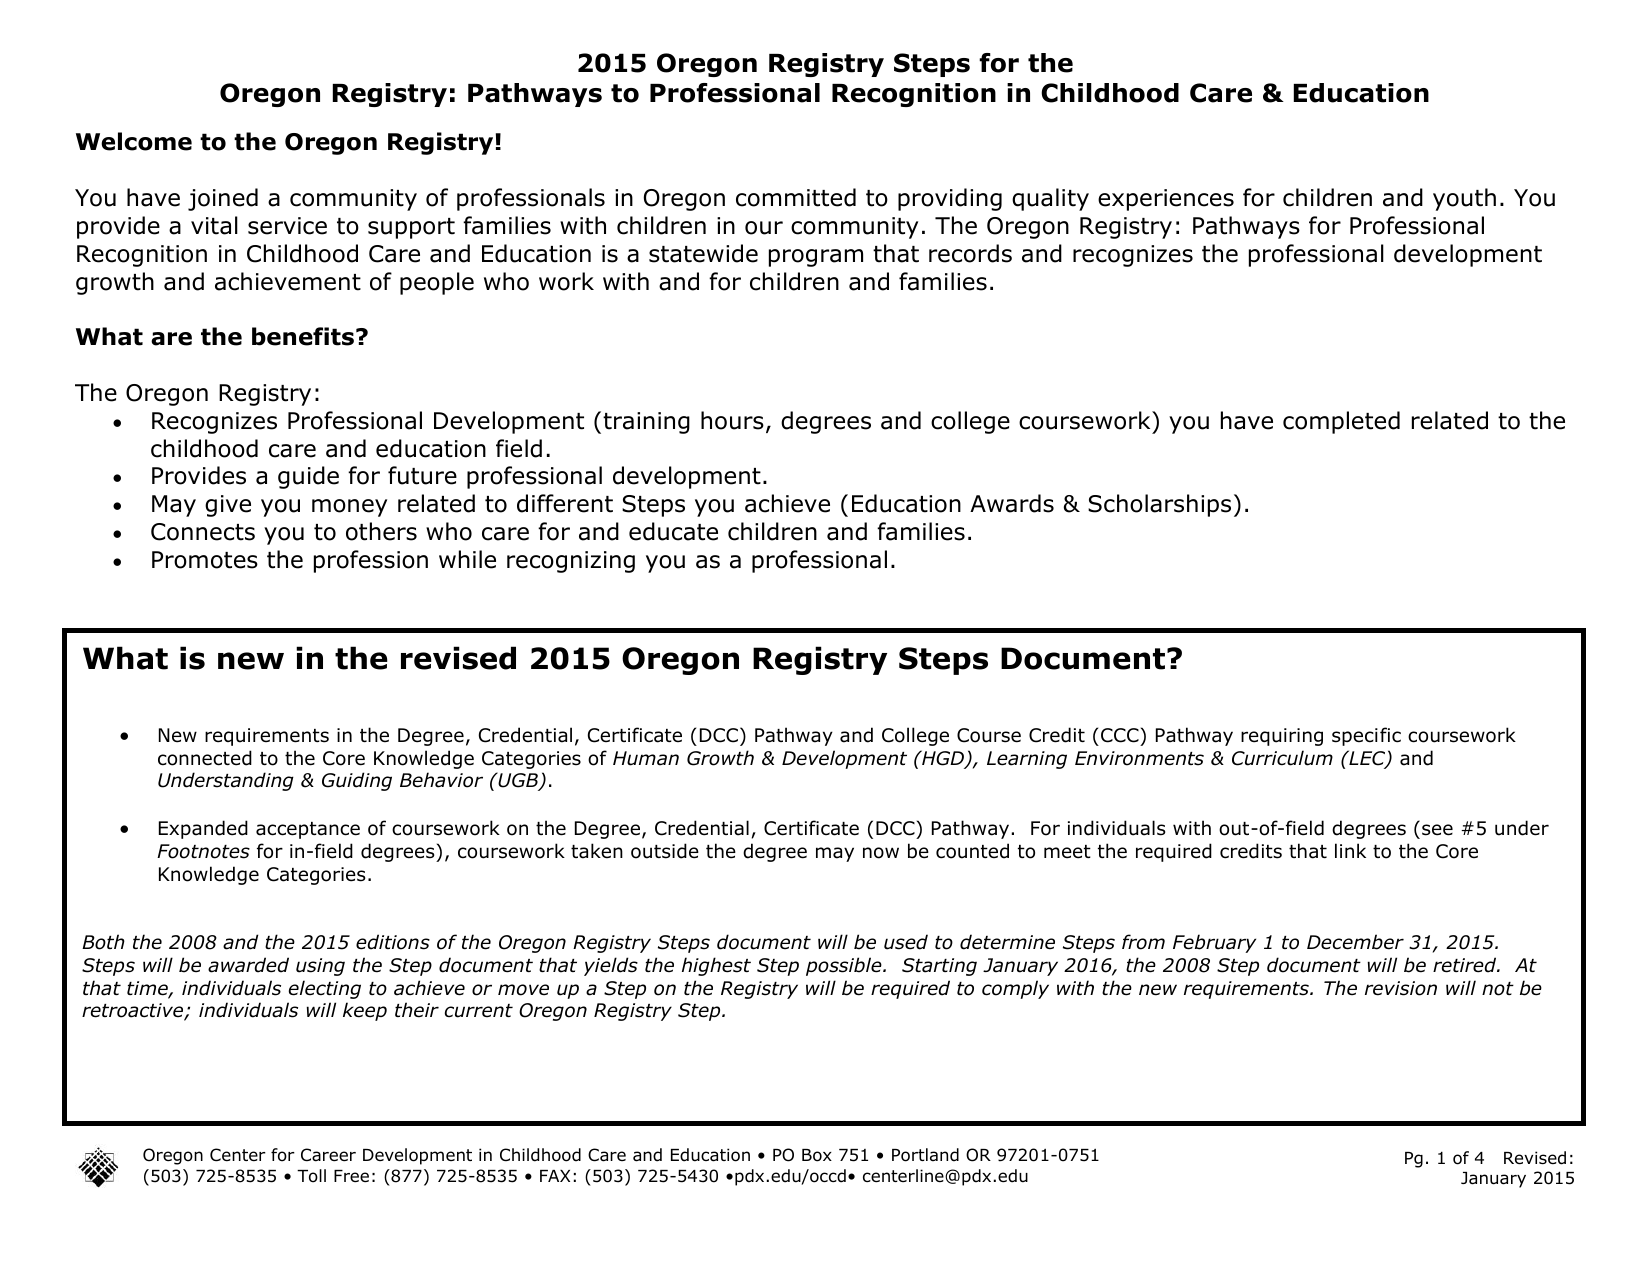 what is new in the revised oregon registry steps document